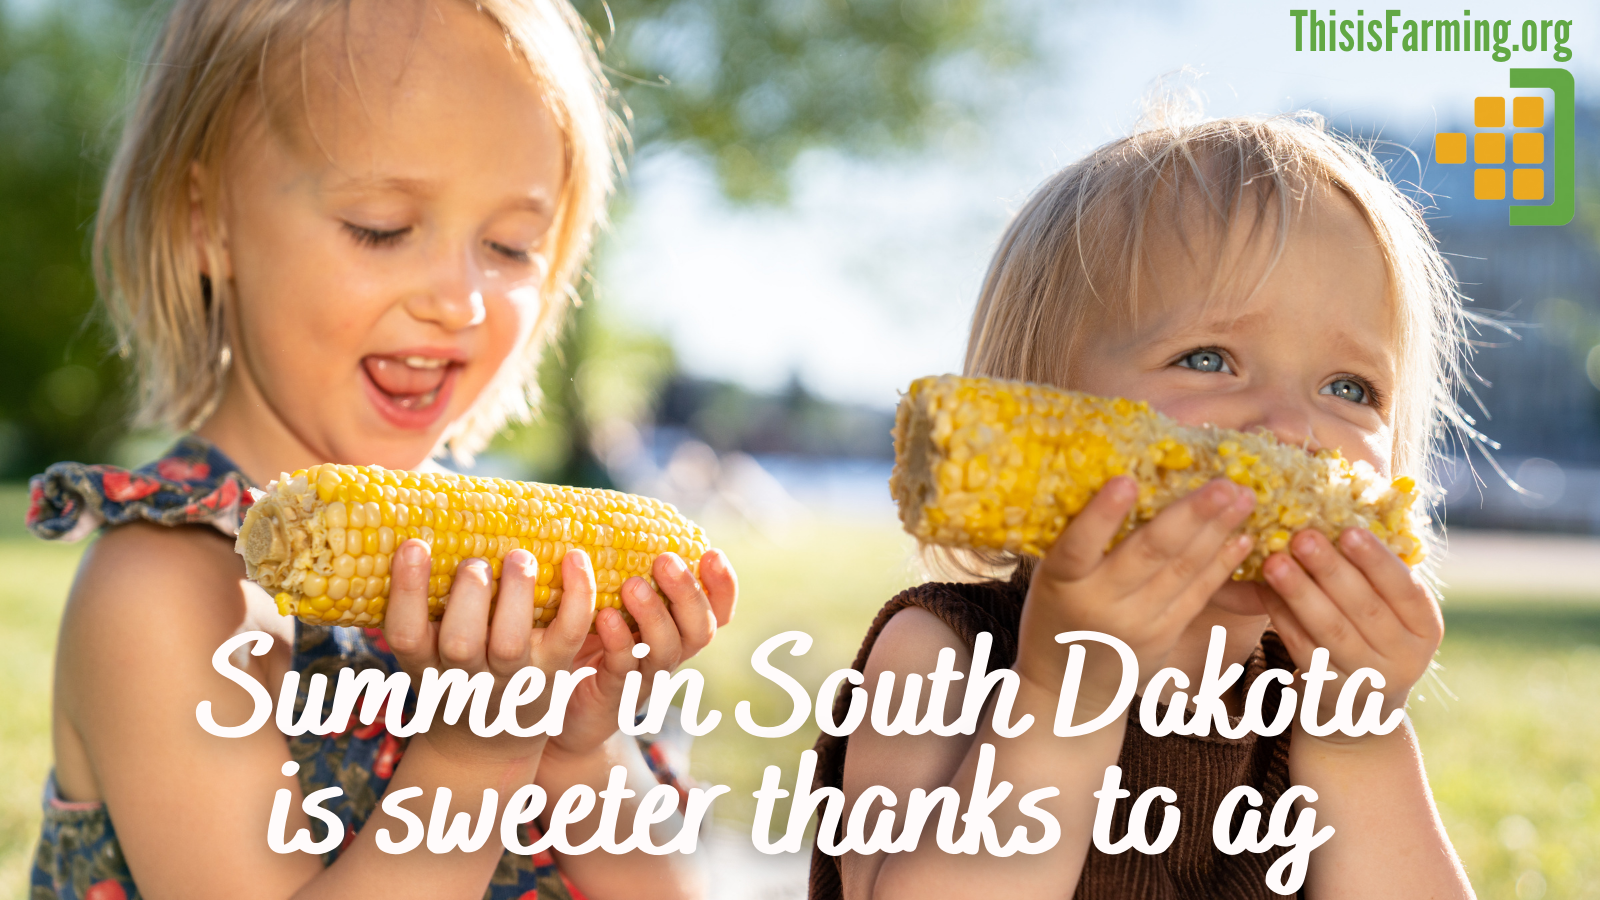 Summer in South Dakota is sweeter thanks to ag